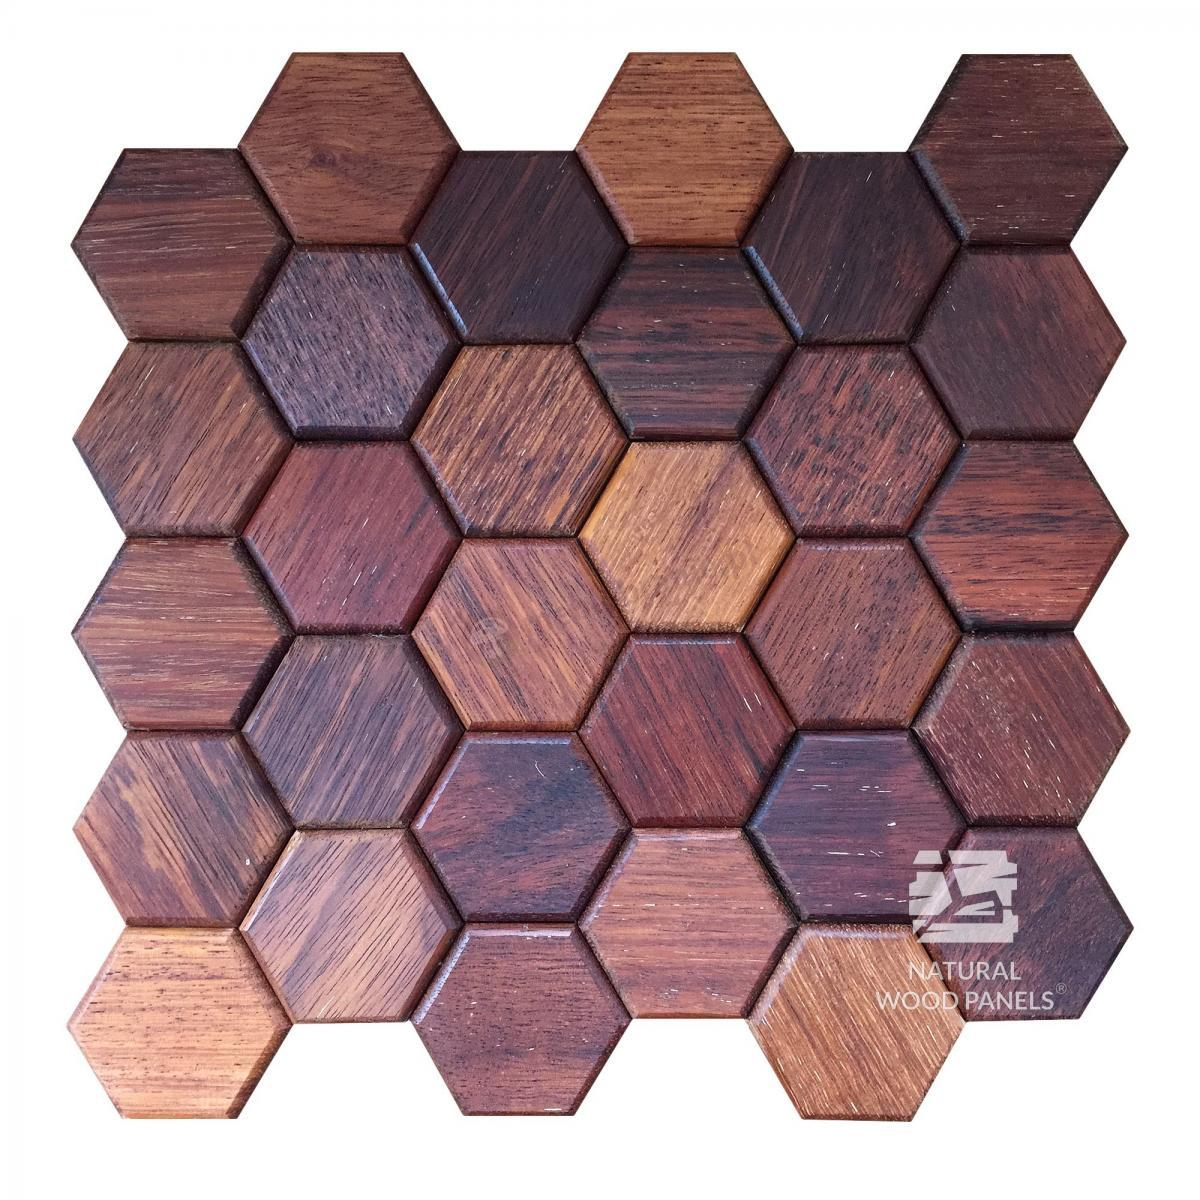 Merbau Hexagon series Natural Wood Panels